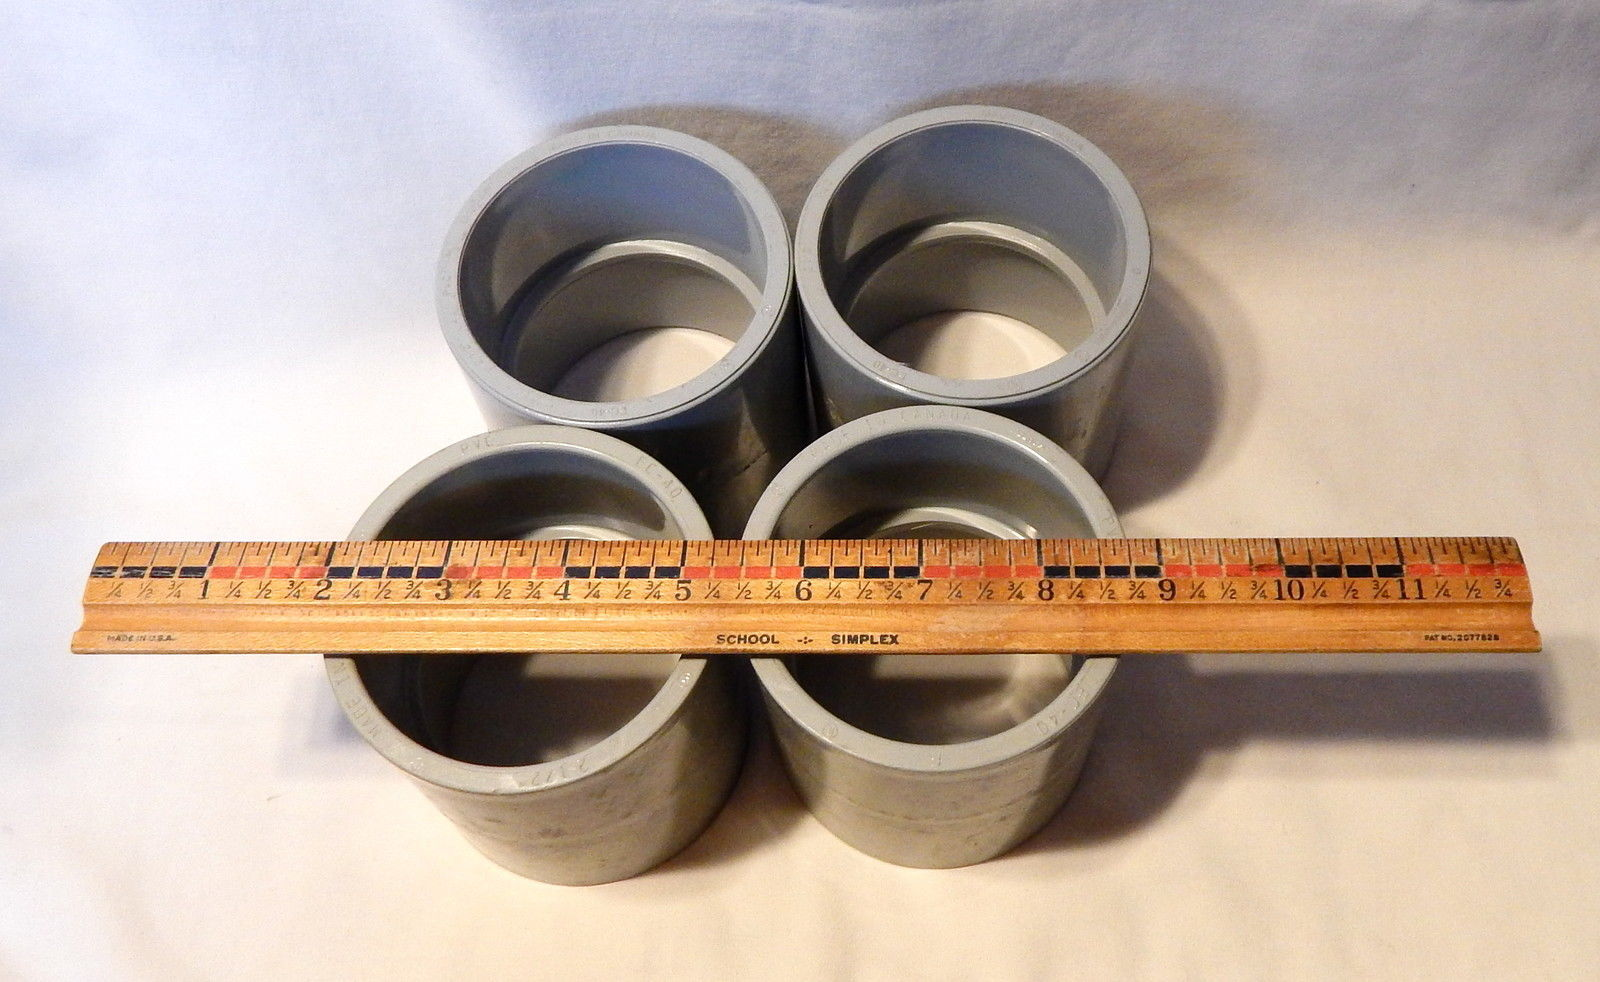 Pvc Joints Scepter 2 1 2 Quot Coupling Slip Joint Pvc Fittings Electrical